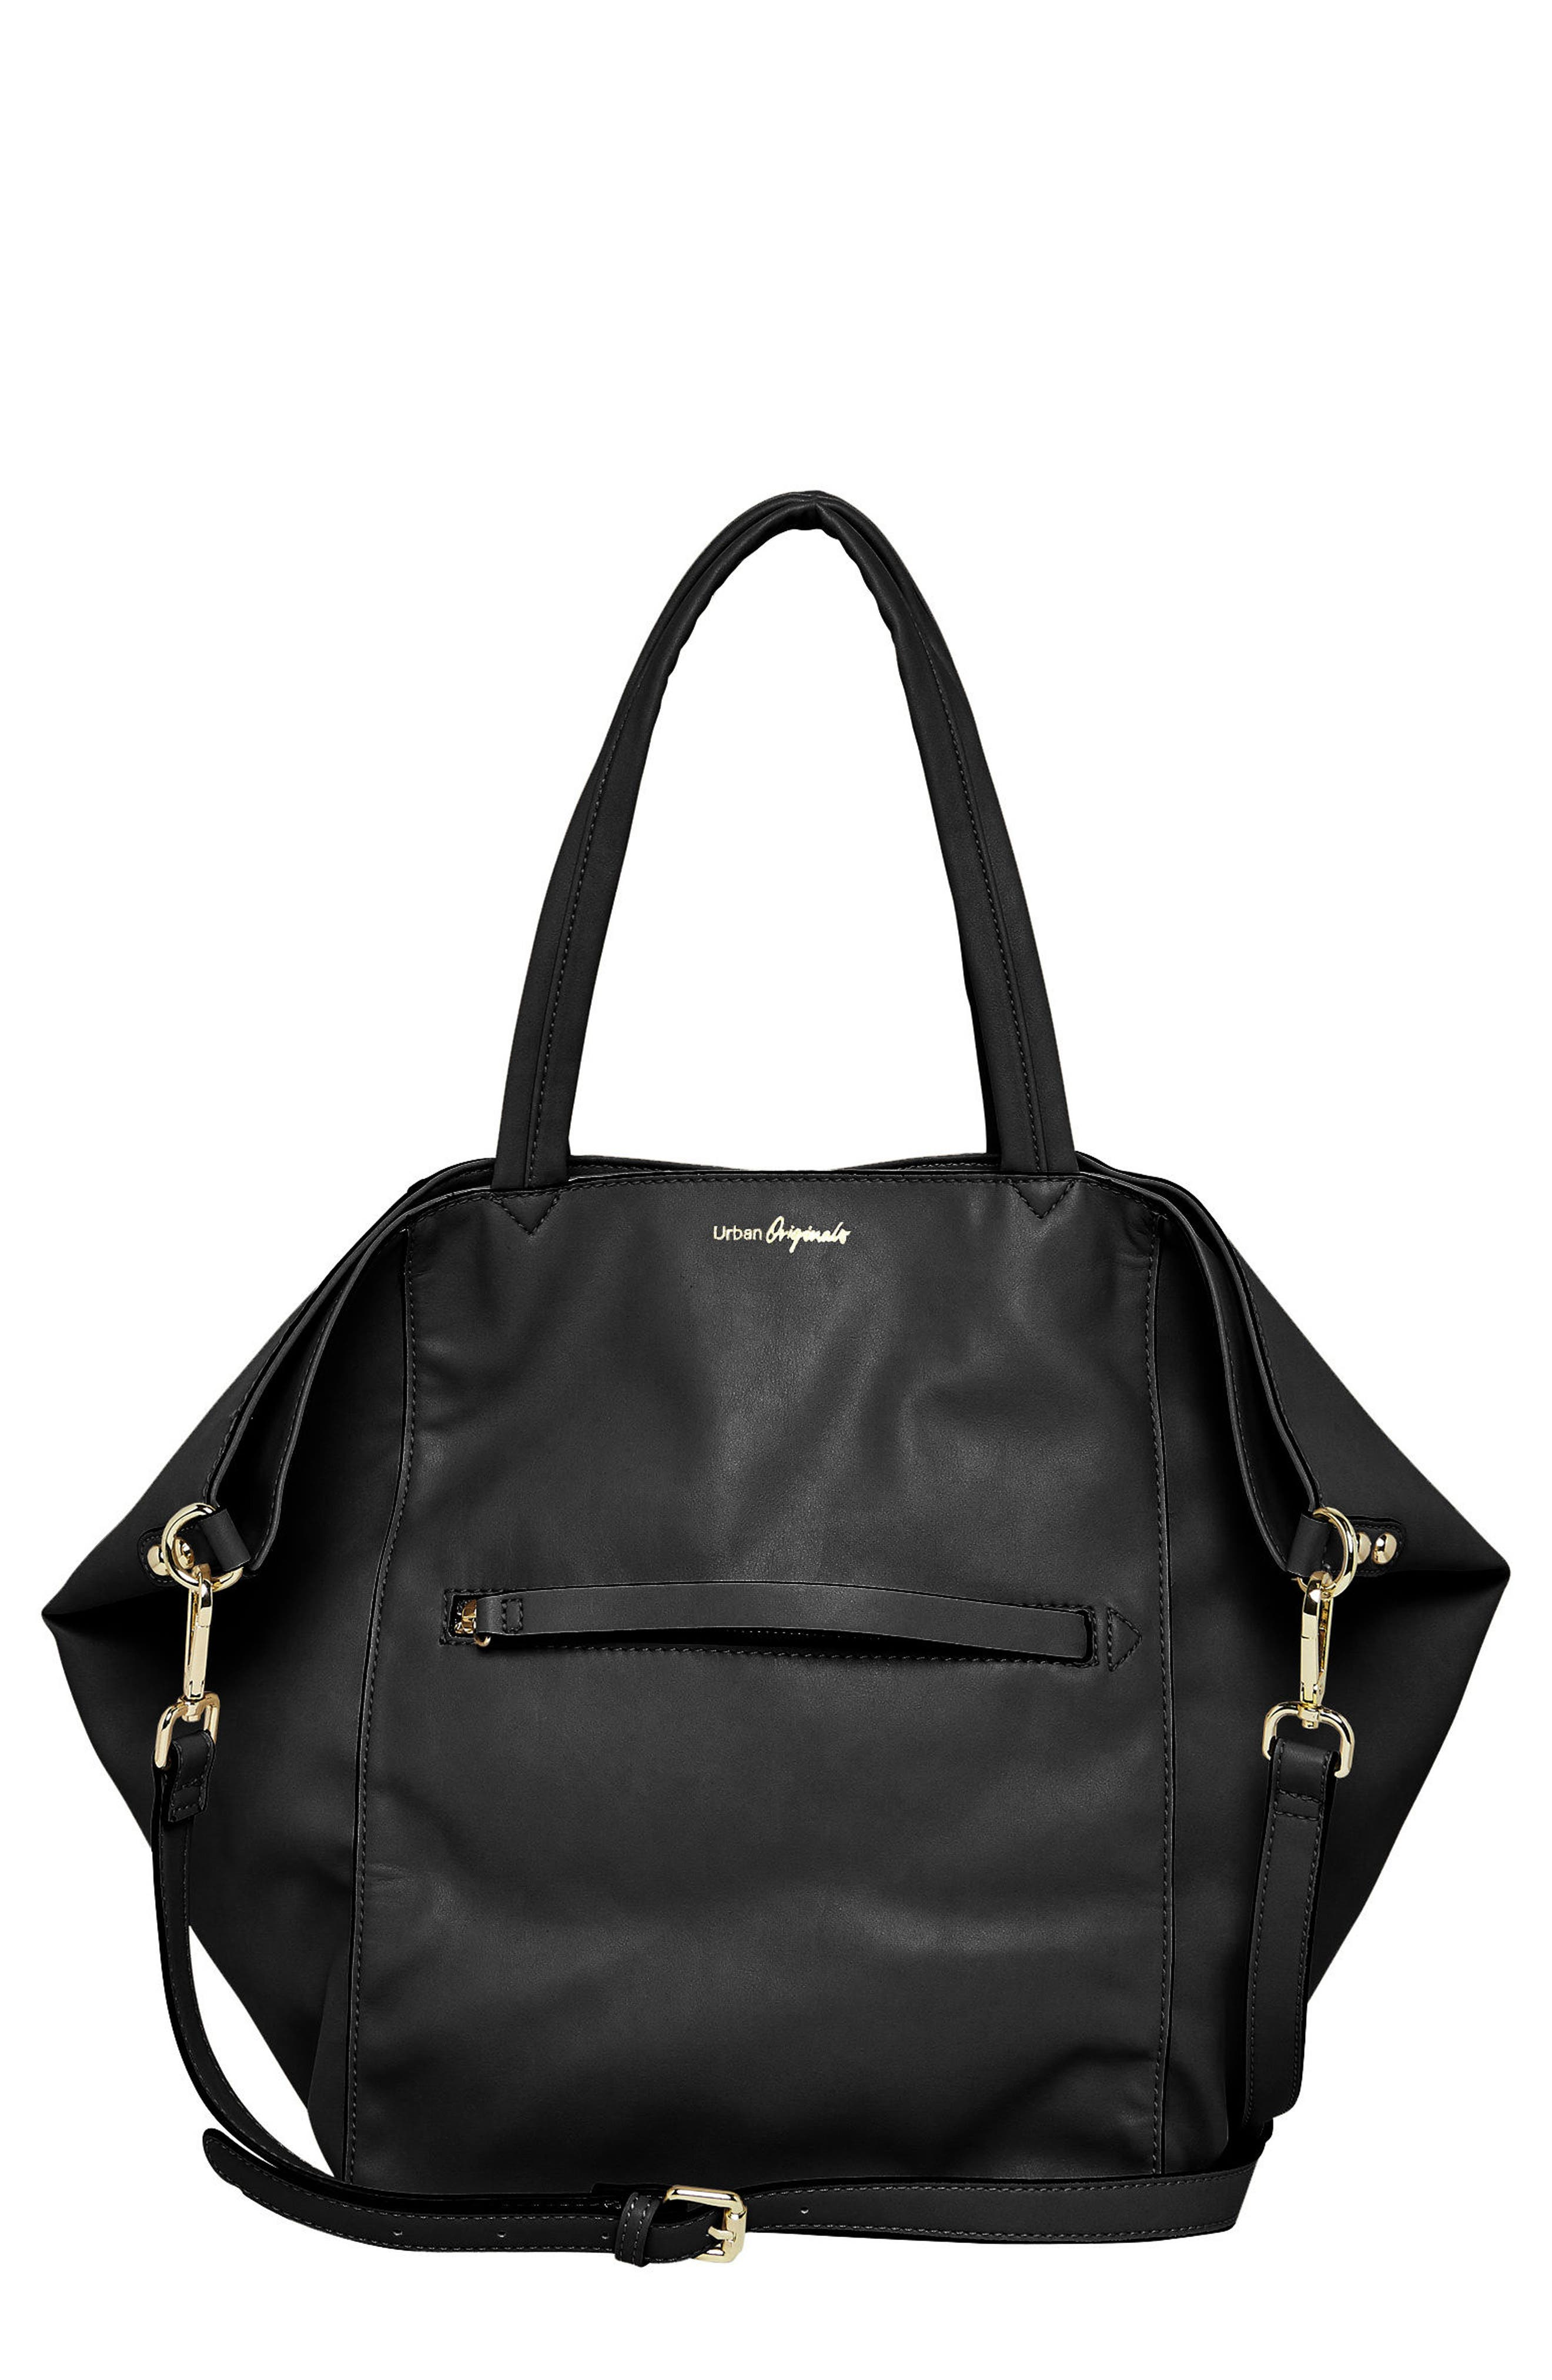 Every Girl Vegan Leather Tote,                         Main,                         color, Black